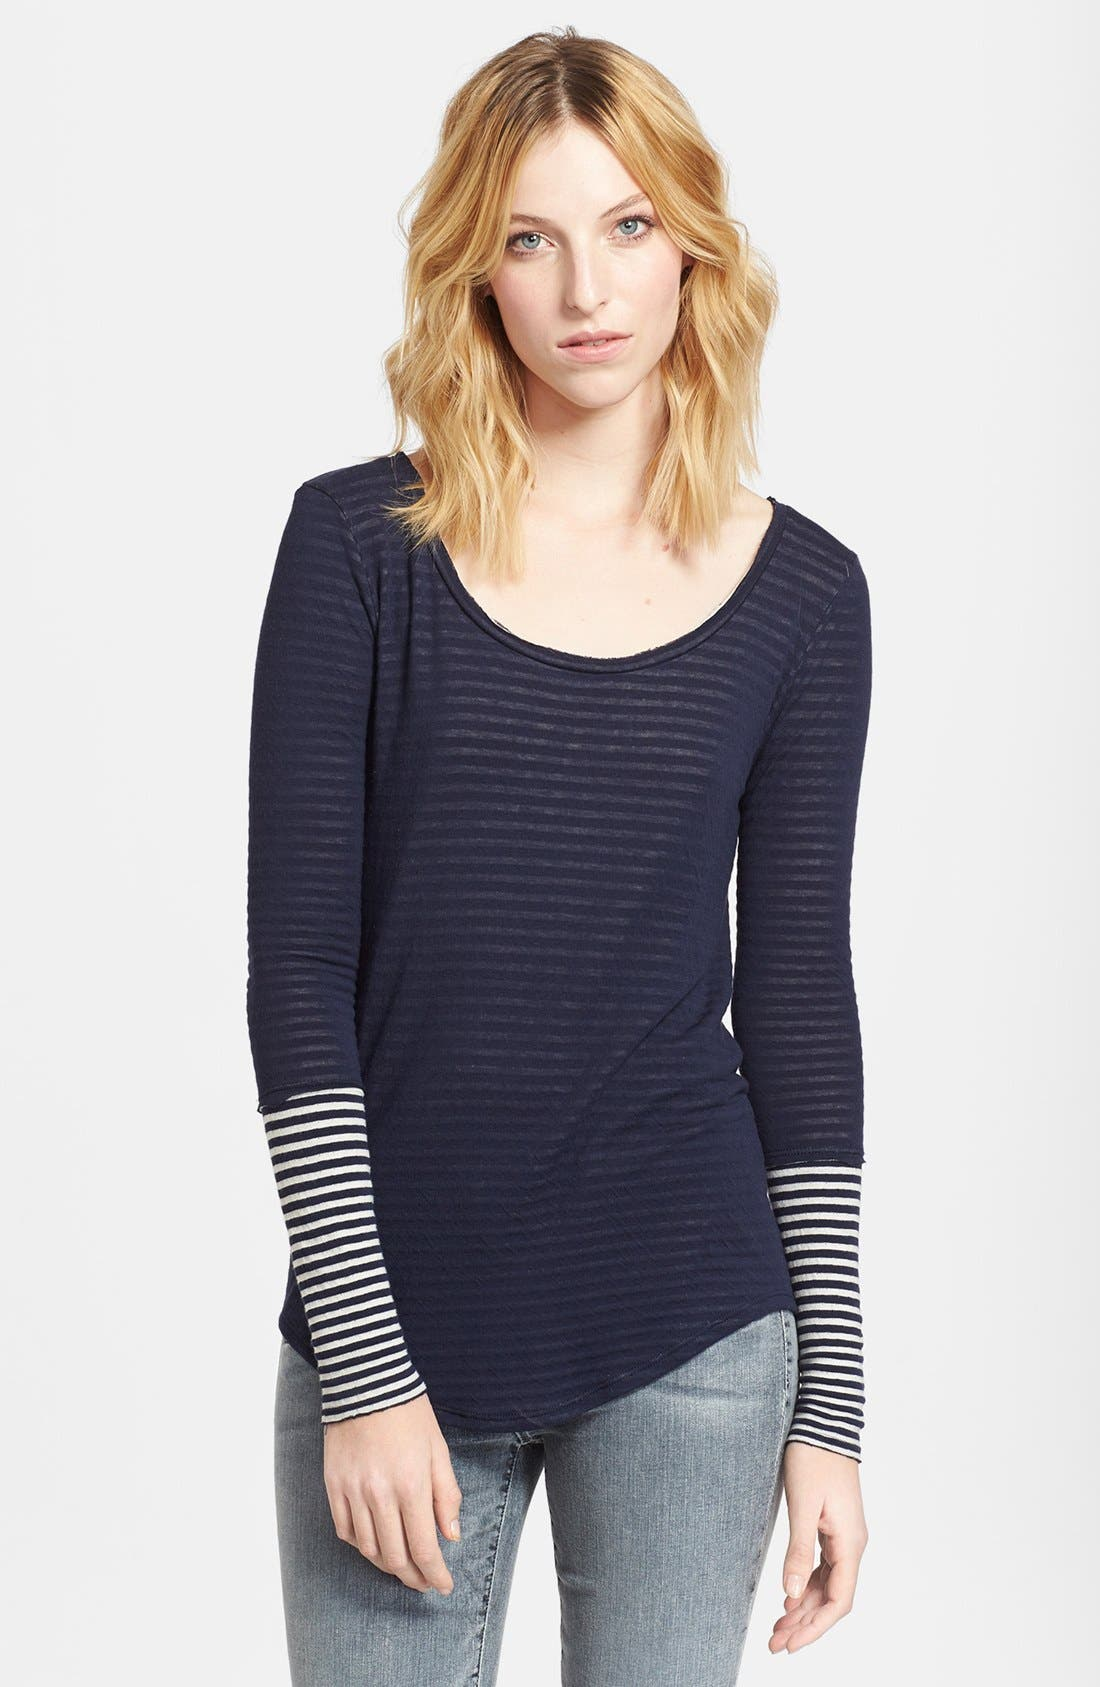 Alternate Image 1 Selected - Whetherly 'Rosewood' Stripe Double Knit Jersey Top